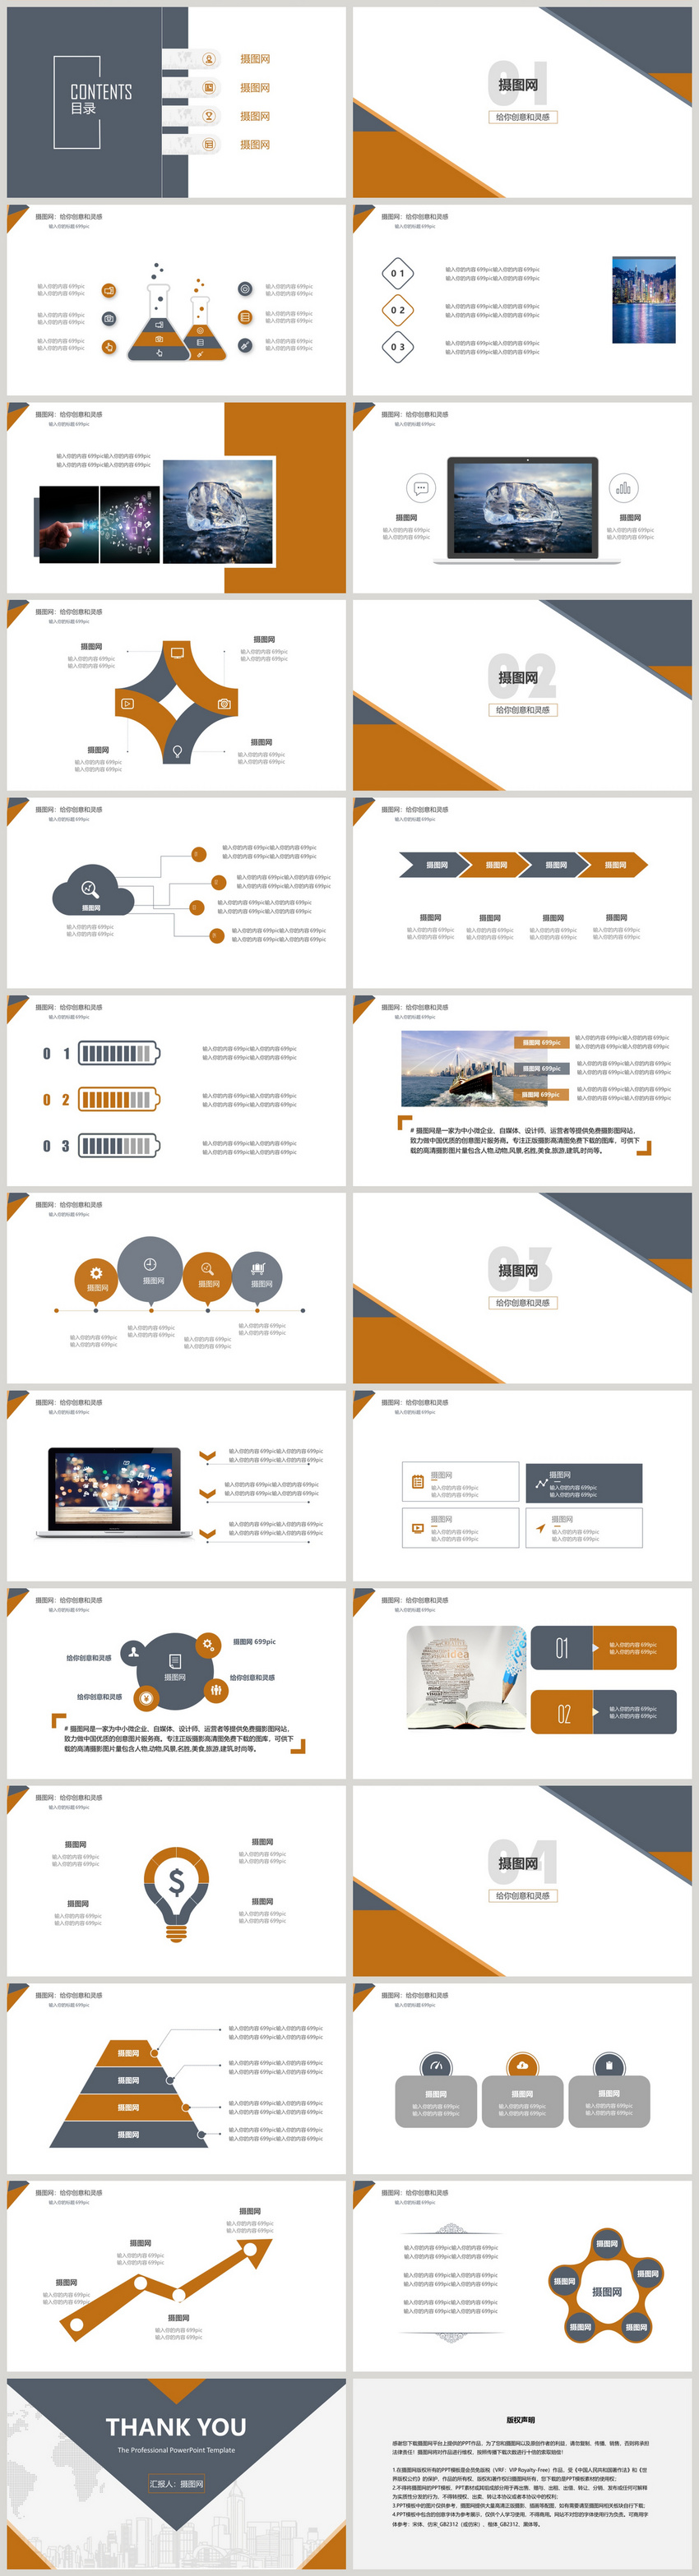 creative geometry team building ppt template powerpoint templete ppt